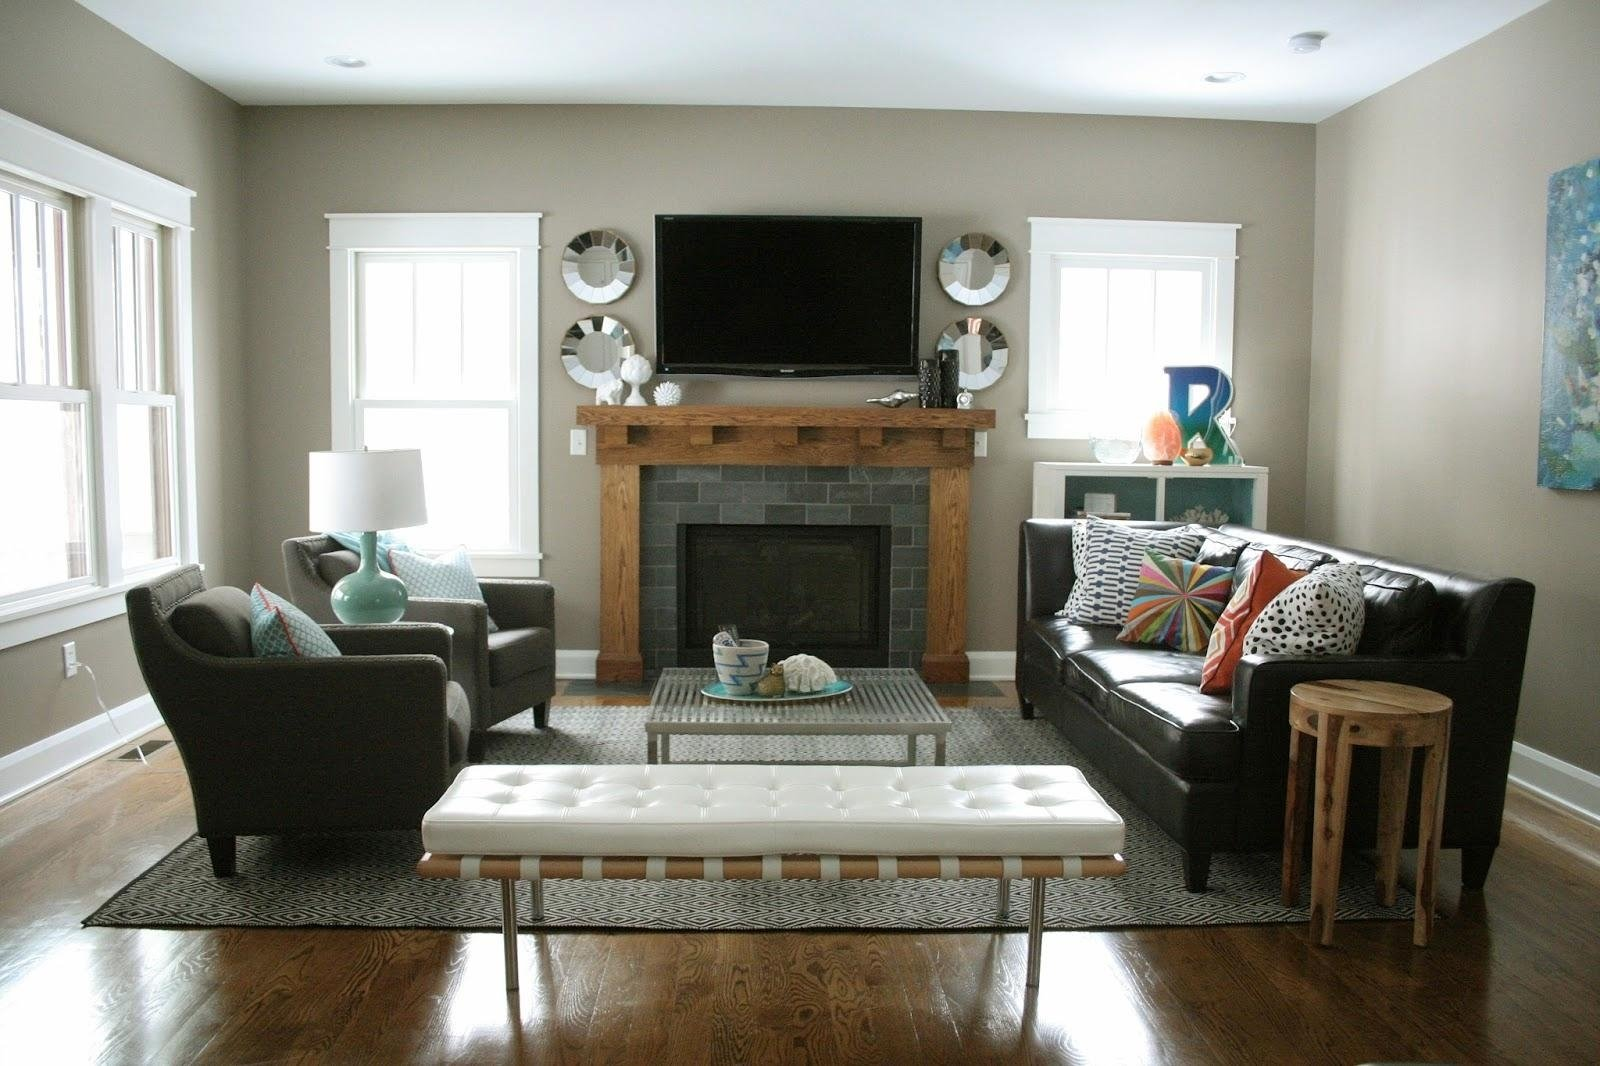 10 Great Family Room Furniture Layout Ideas small living room furniture layout ideas nurani